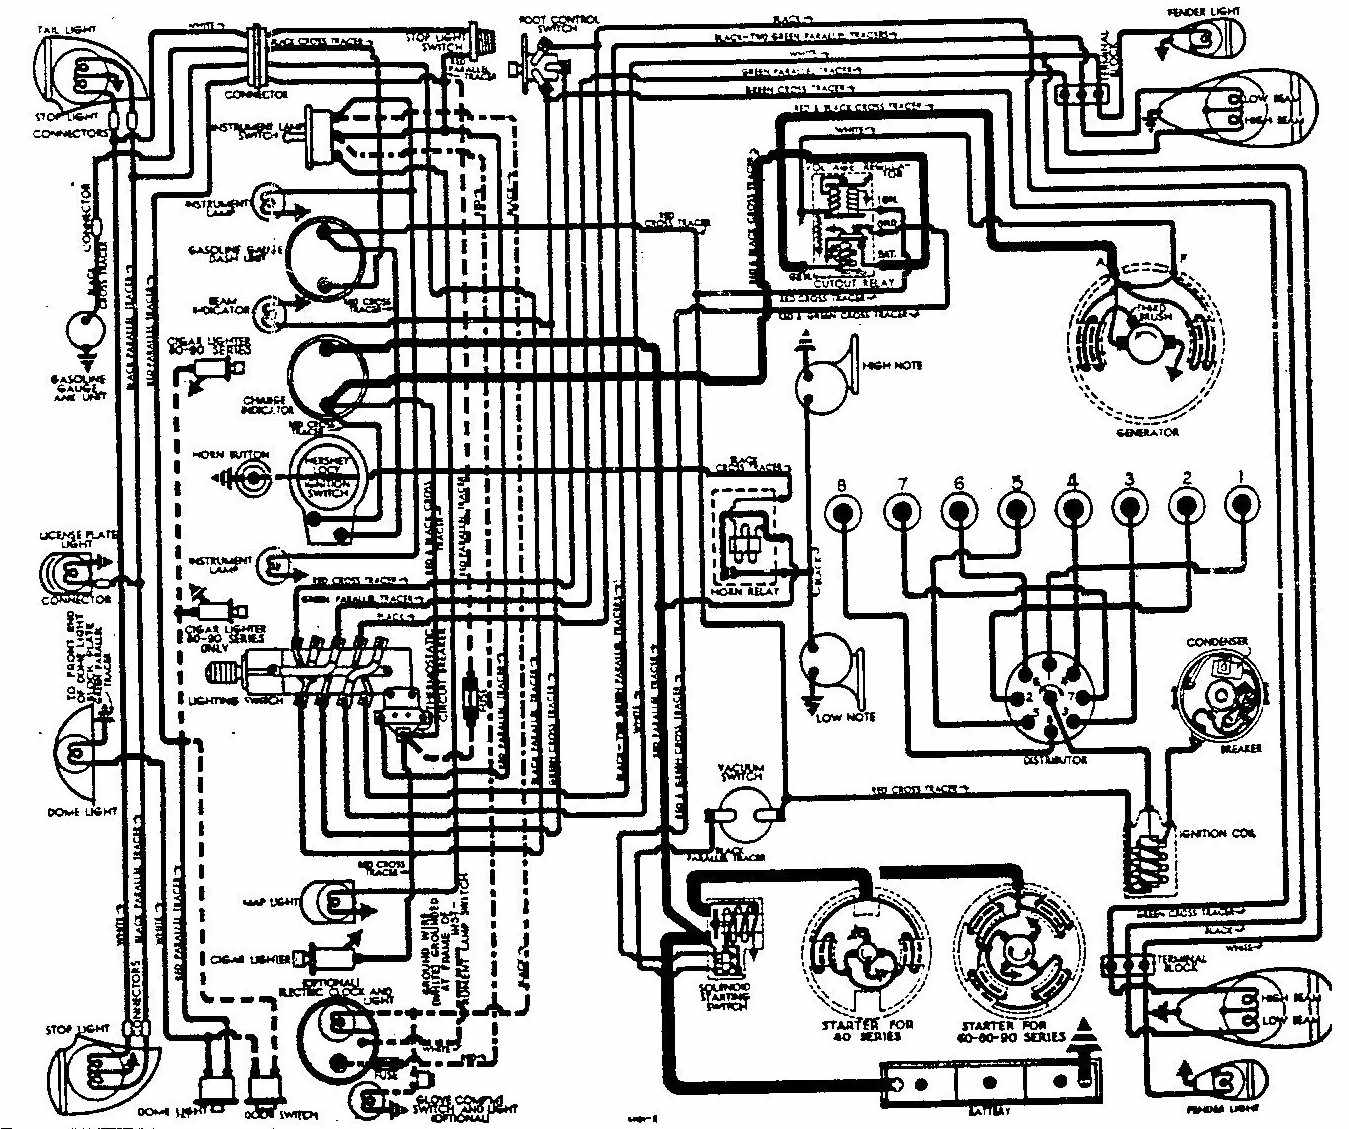 Buick+Roadmaster+1938+Electrical+Wiring+Diagram new holland 3930 wiring diagram wiring diagram simonand ford 4600 wiring harness at bakdesigns.co